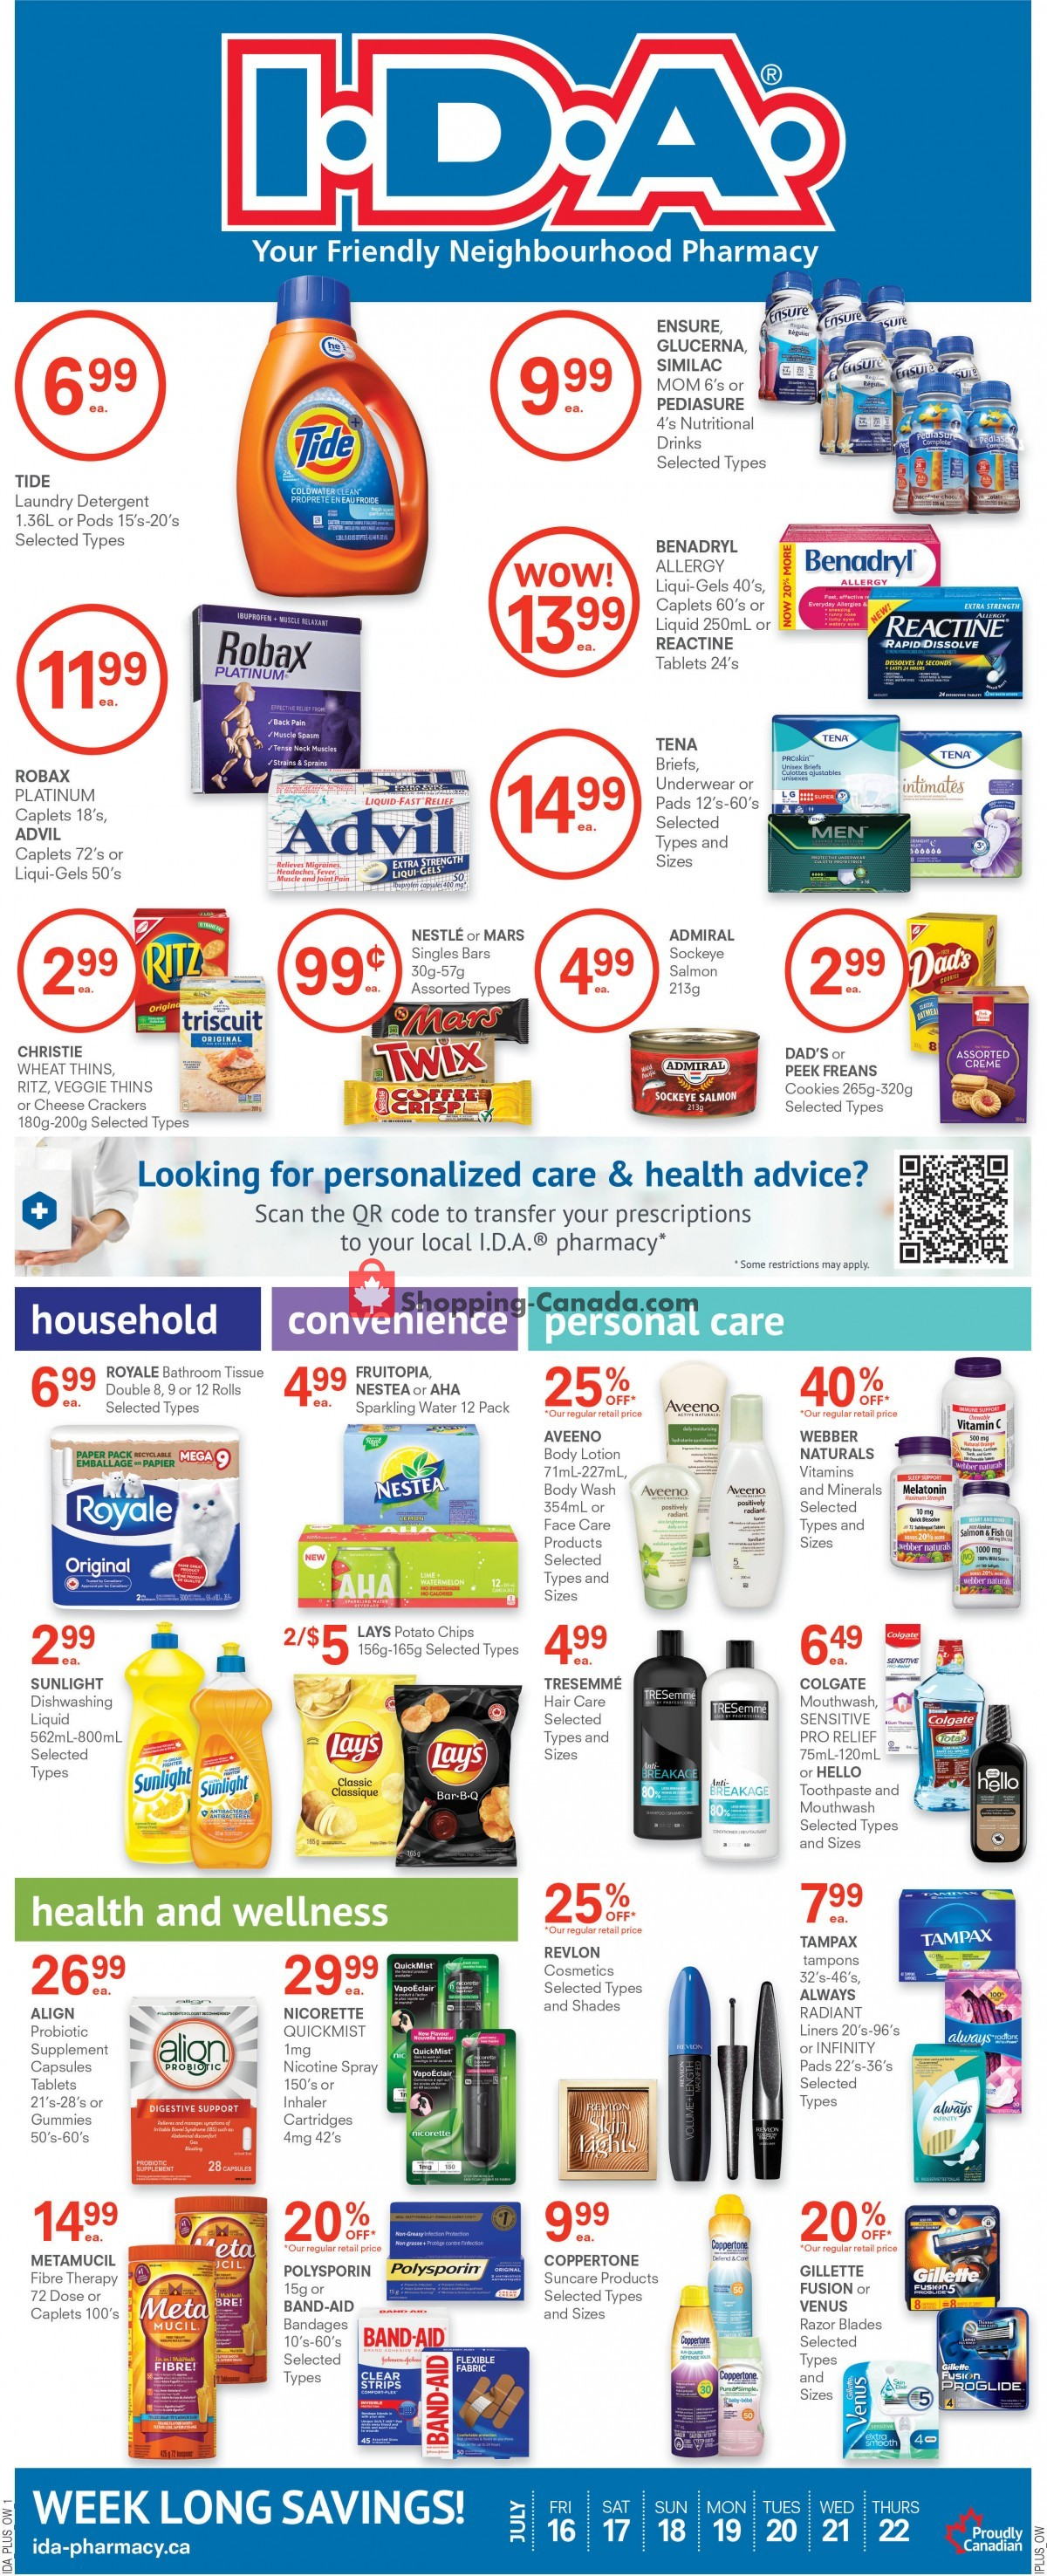 Flyer Roulston's Pharmacy Canada - from Friday July 16, 2021 to Thursday July 22, 2021